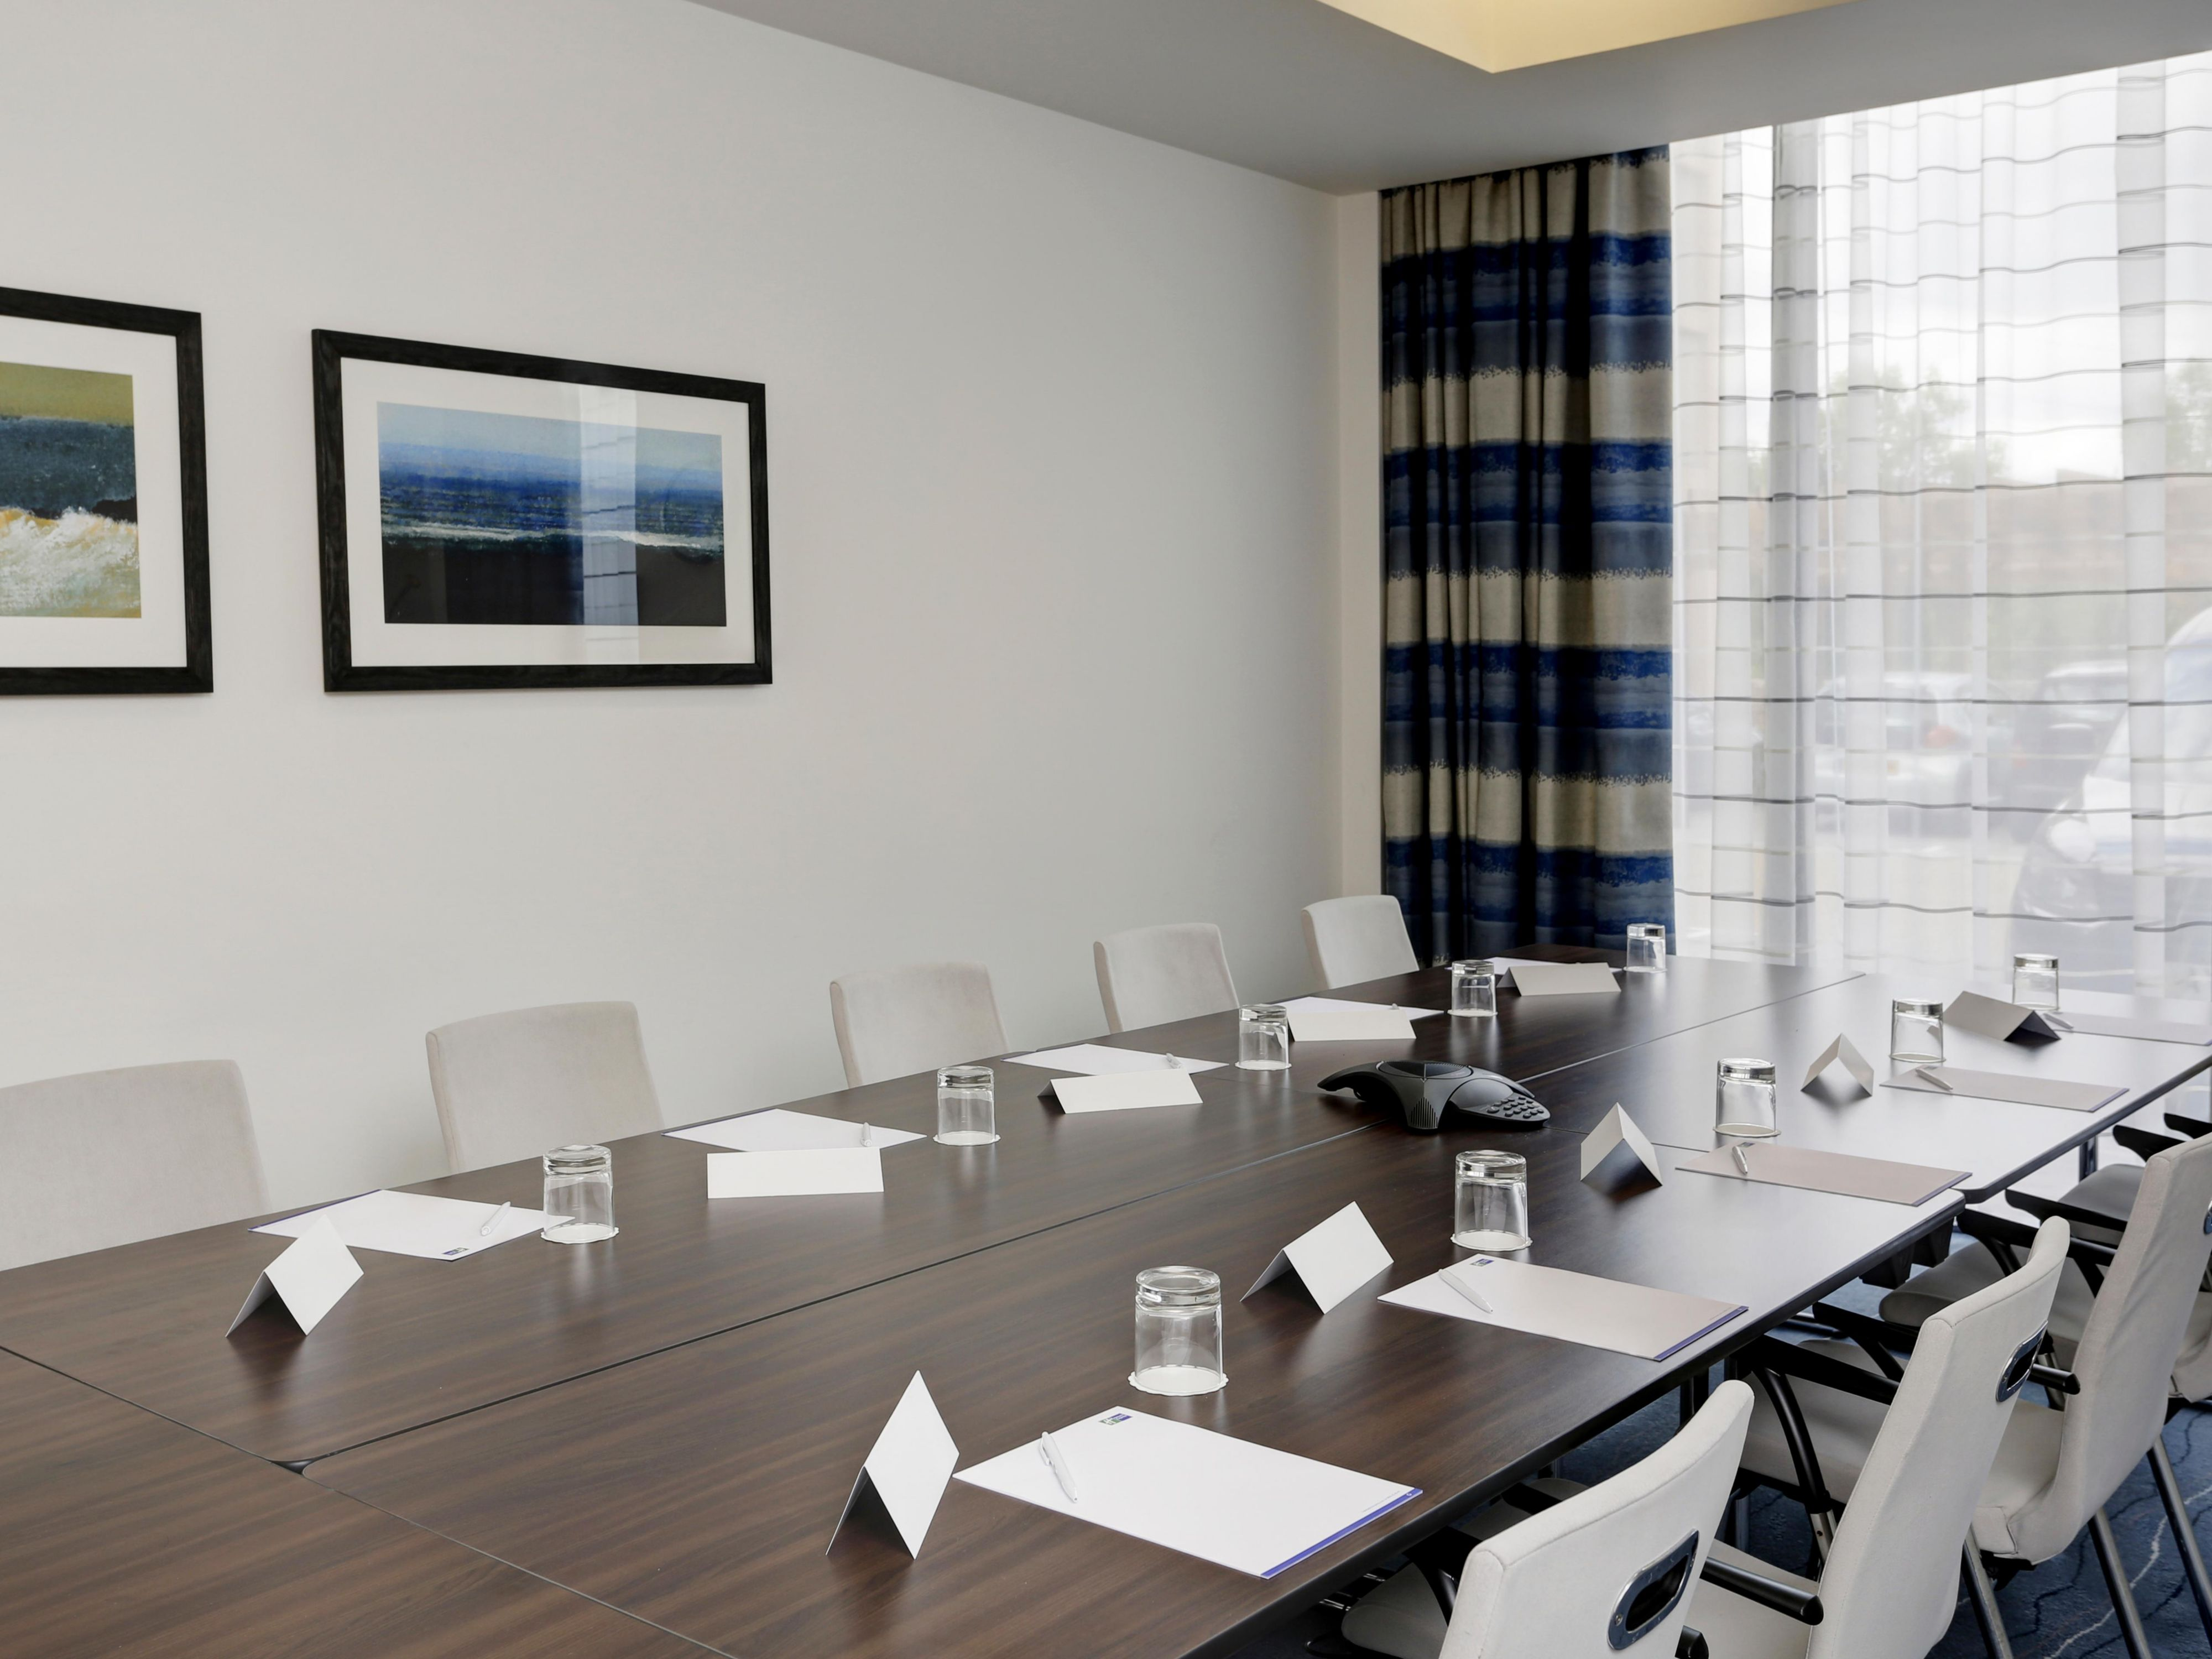 Natural day lit meeting rooms, equipped with everything you need